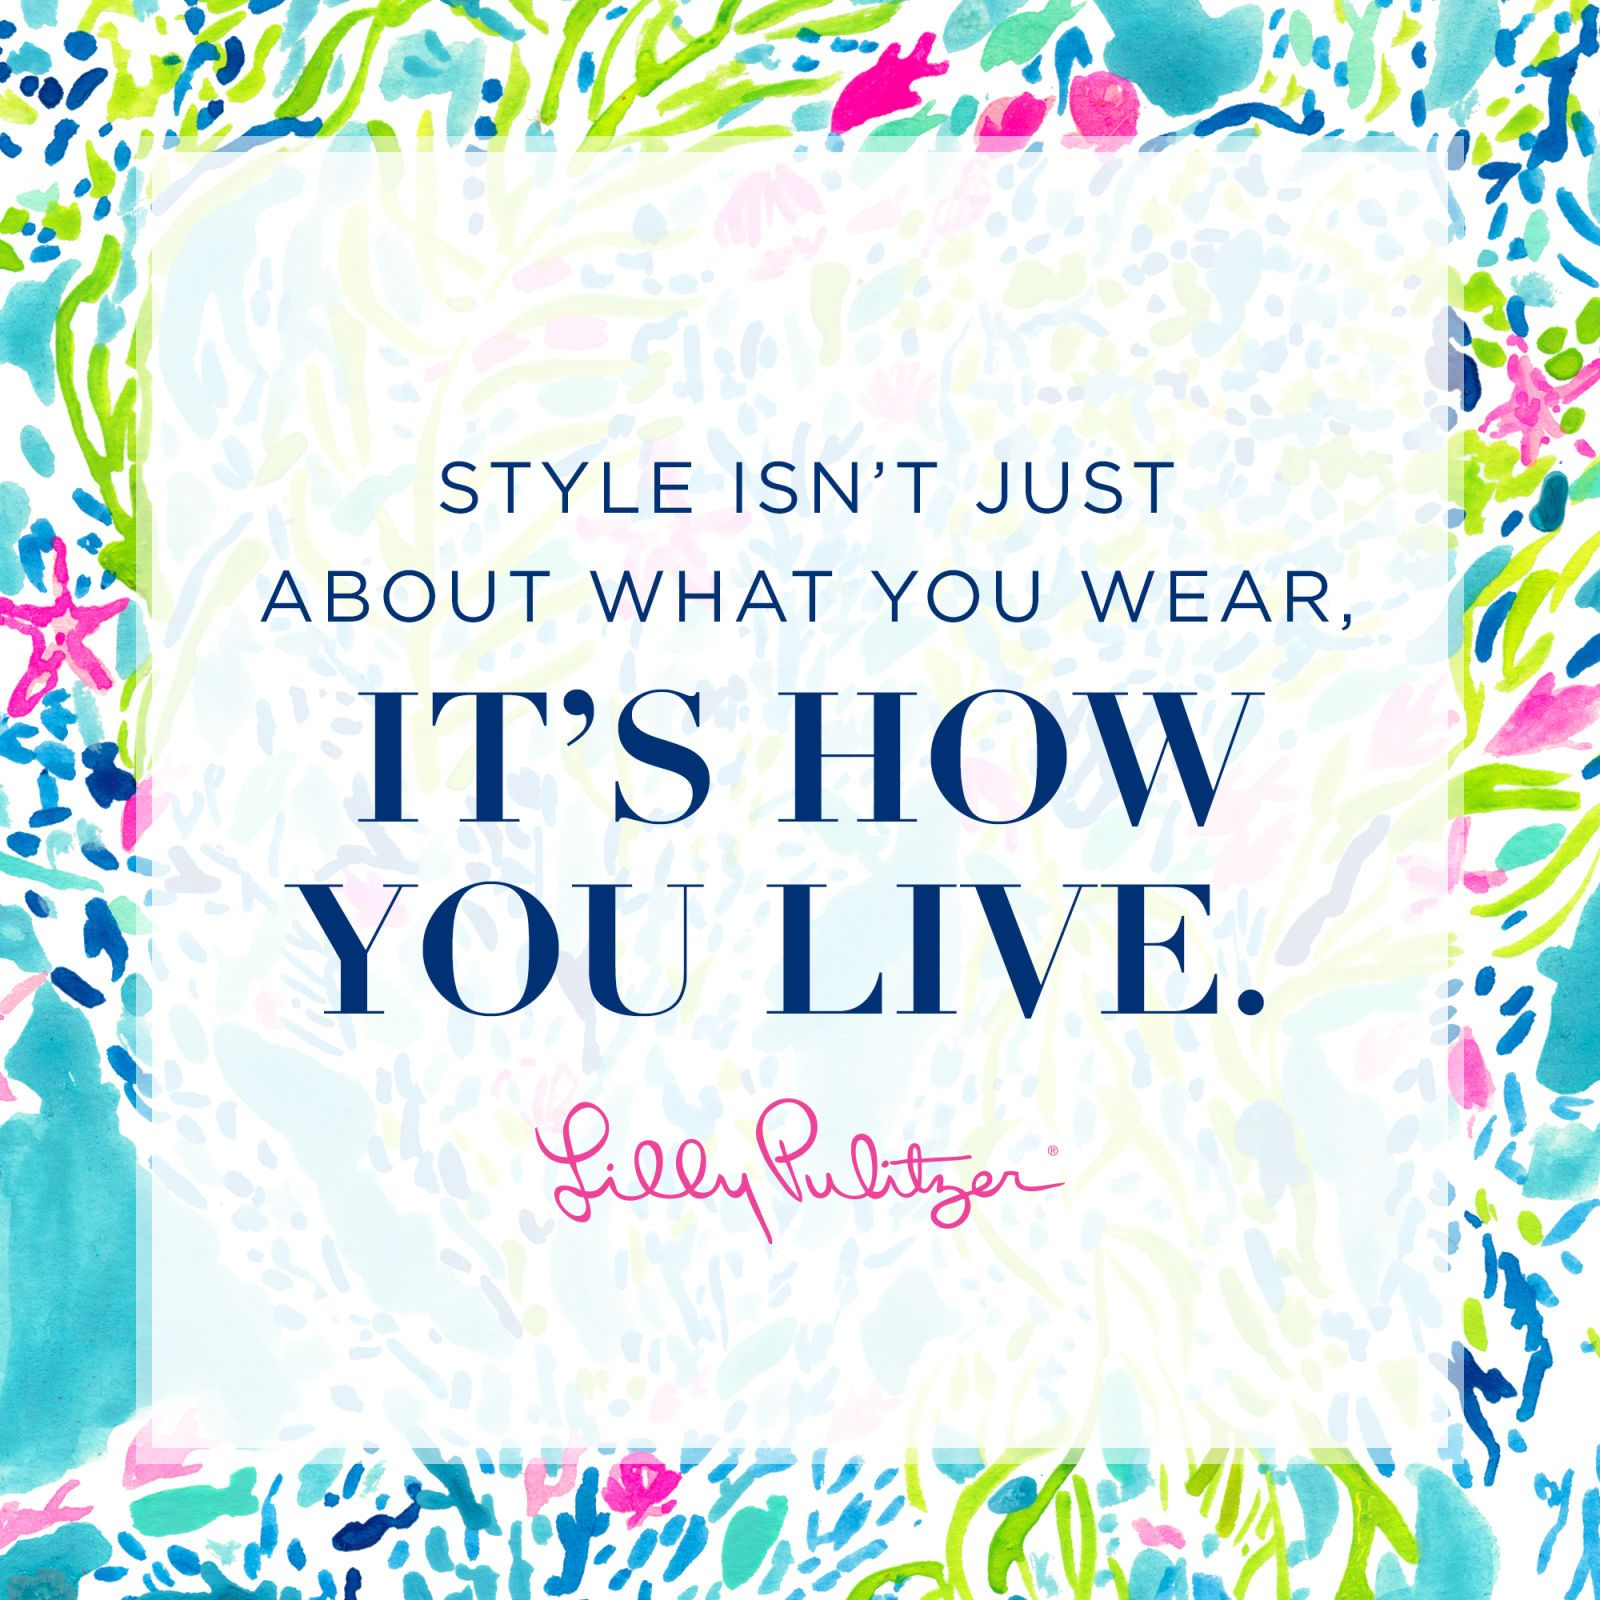 Lilly Pulitzer Quotes 8 Of The Best Lilly Pulitzer Quotes Of All Time  Thoughts